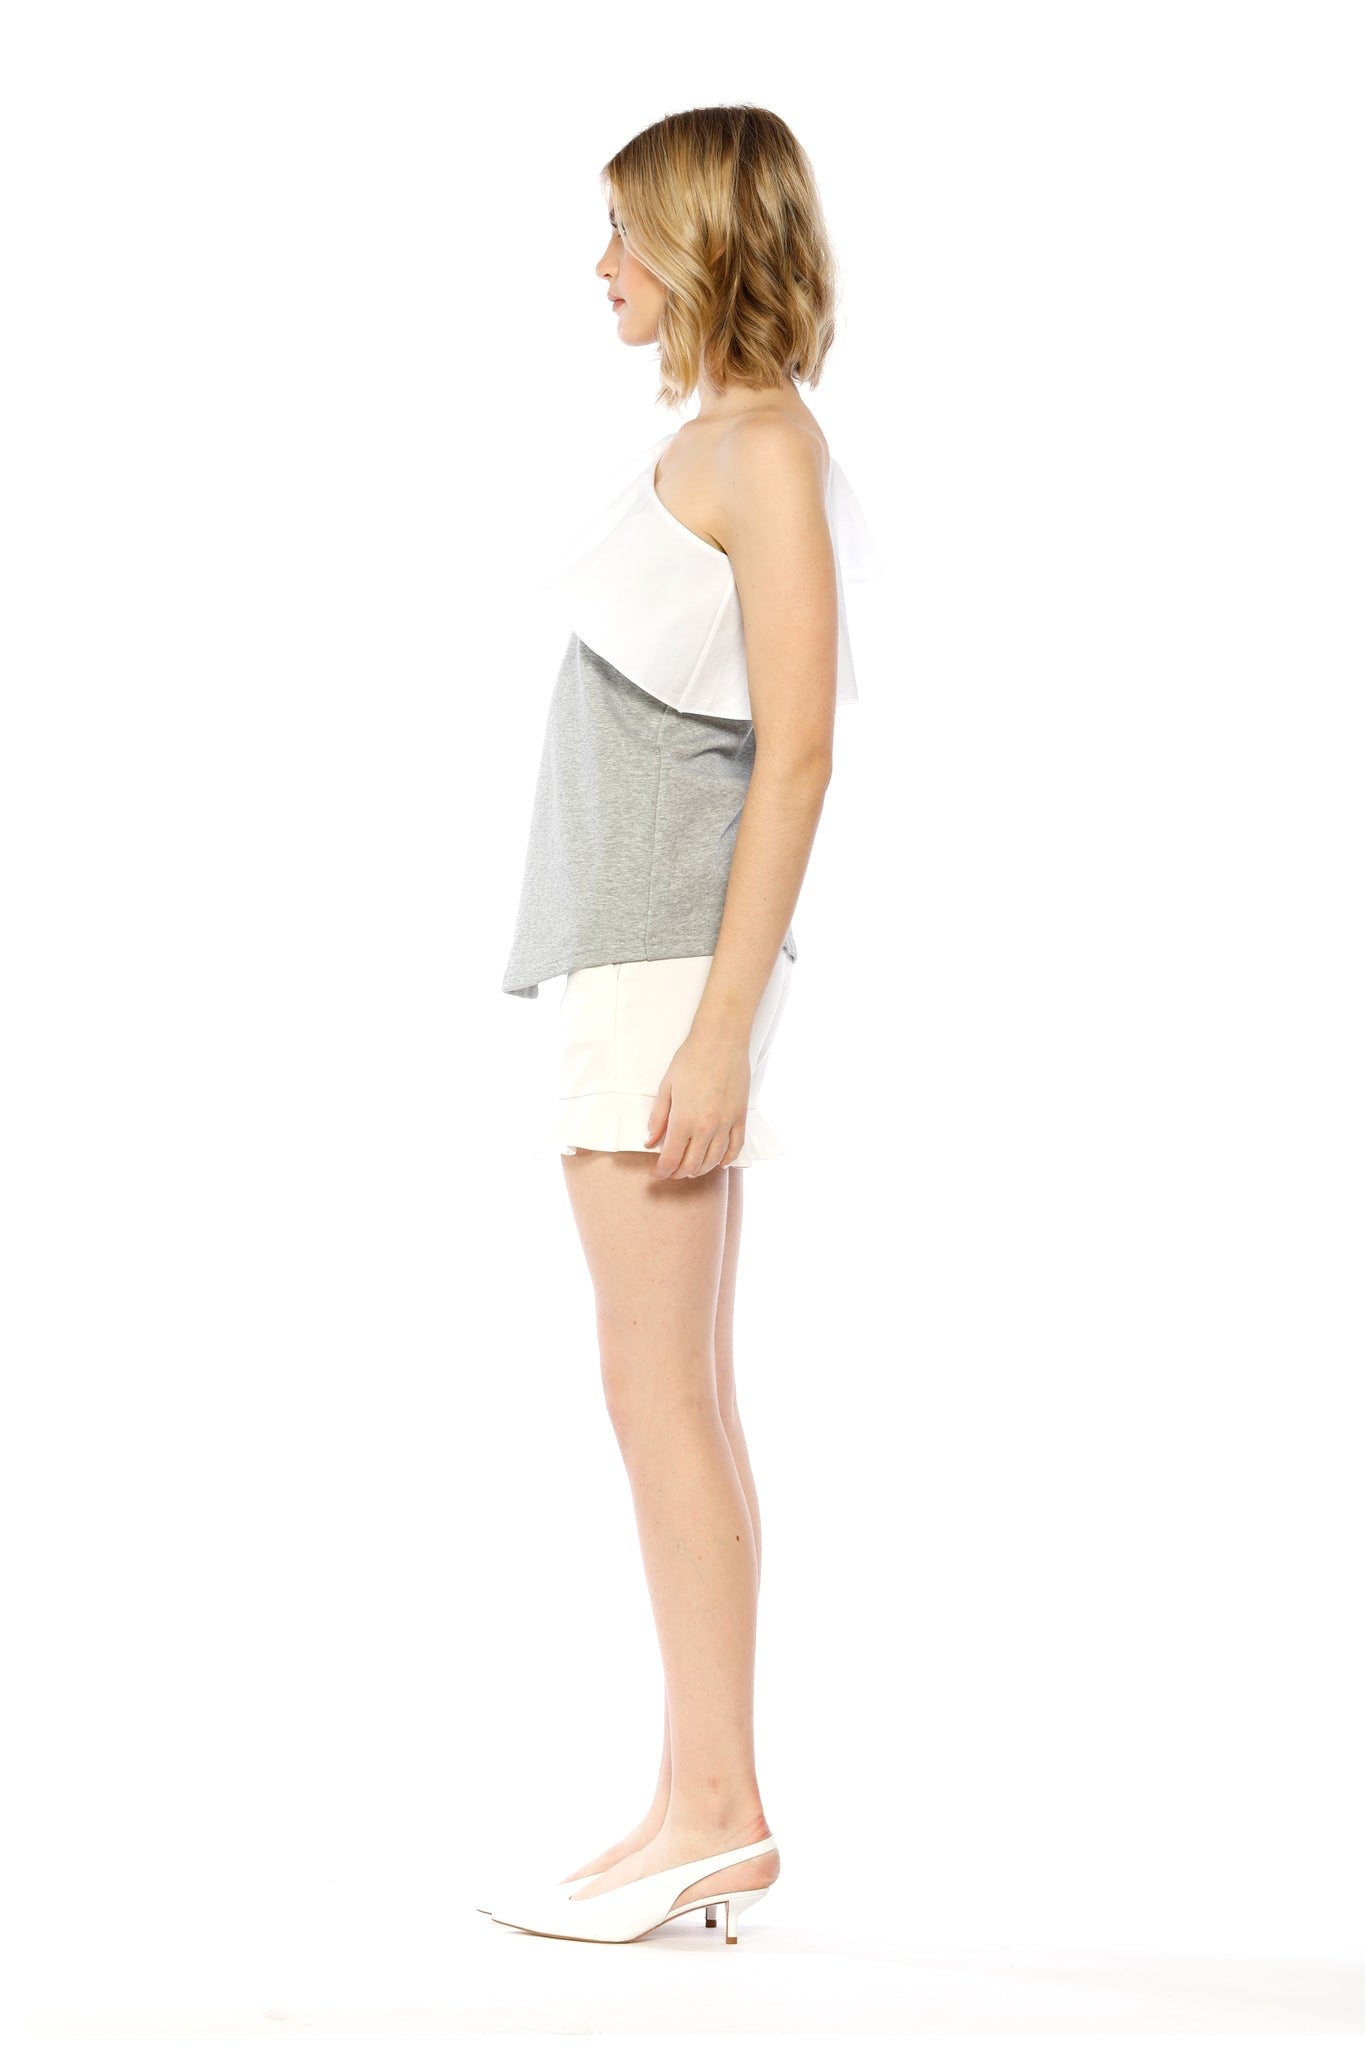 Side view of Marge Top, heather grey one-shouldered top with a large ruffled collar and a bishop sleeve adorned with a small tie. 87.6% Cotton and 12.4% Spandex - and Machine-washable.